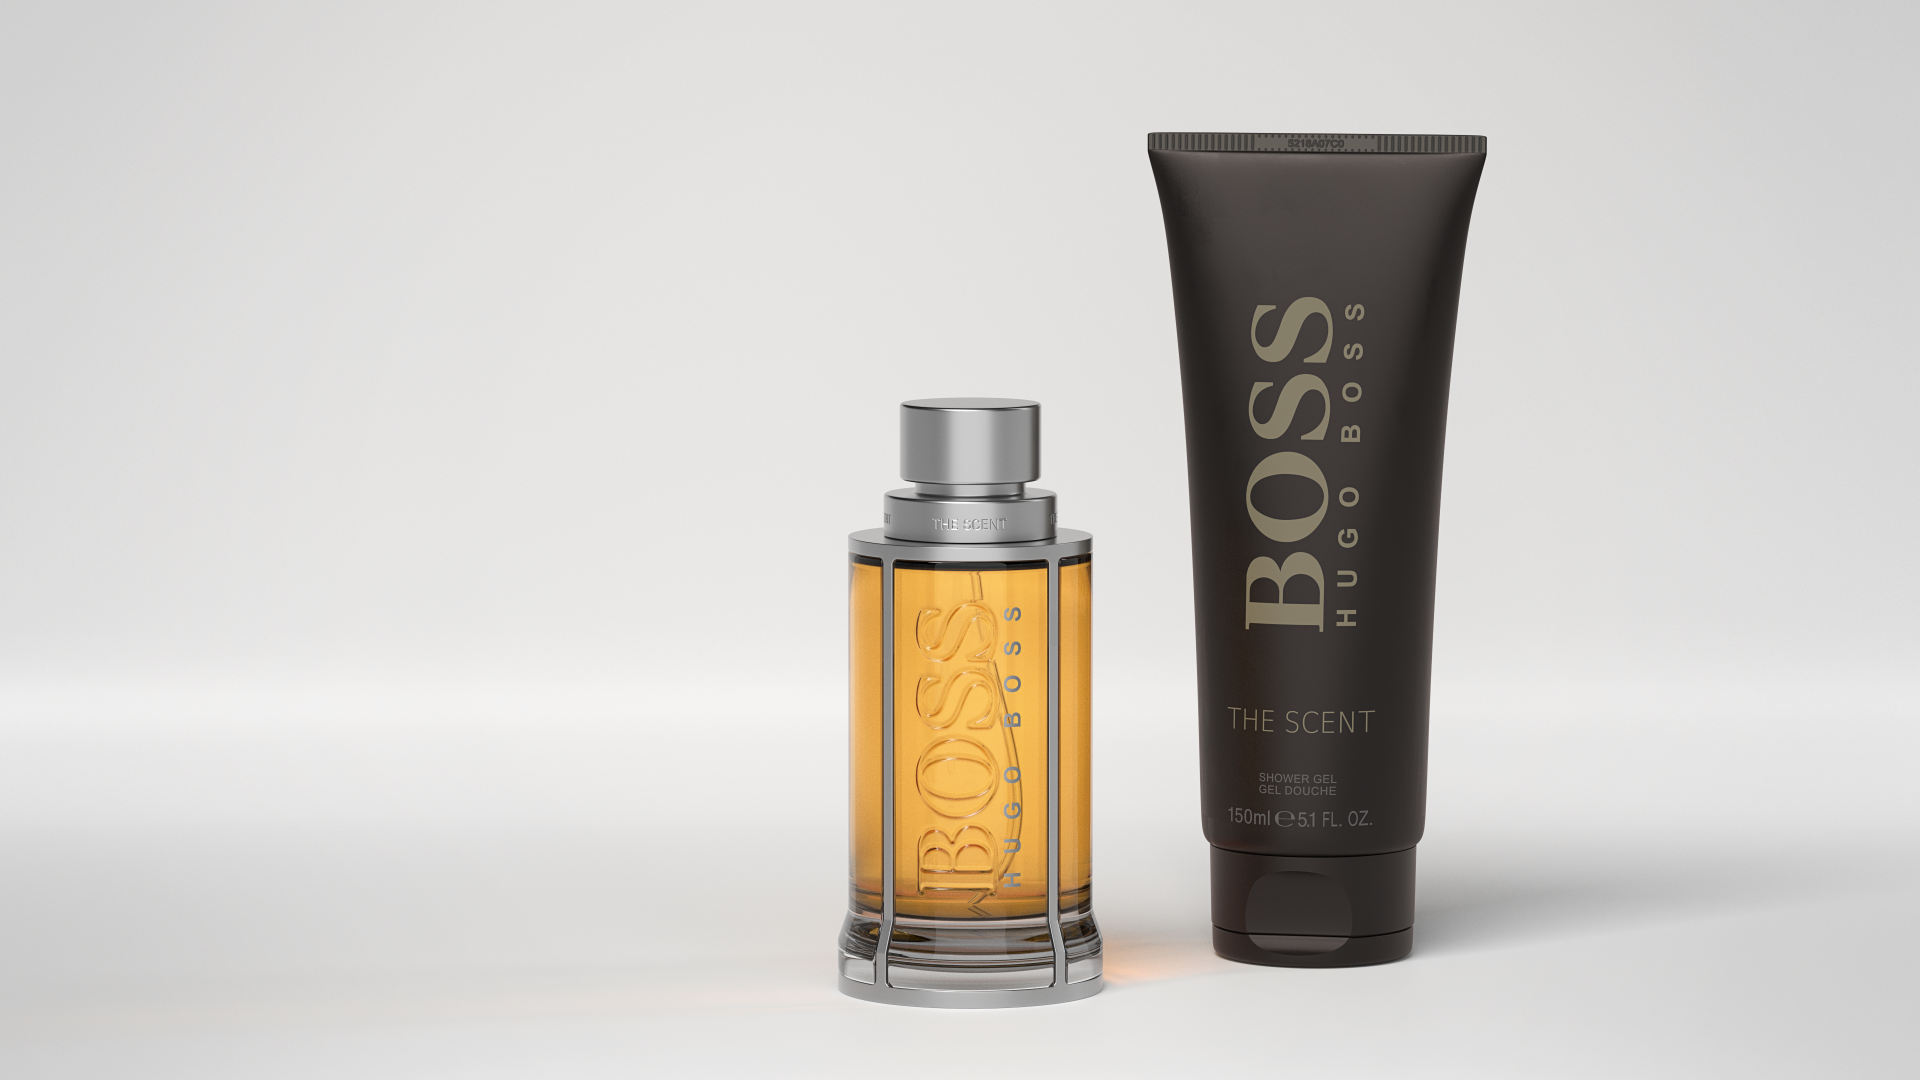 Hugo Boss The Scent Materialstudie